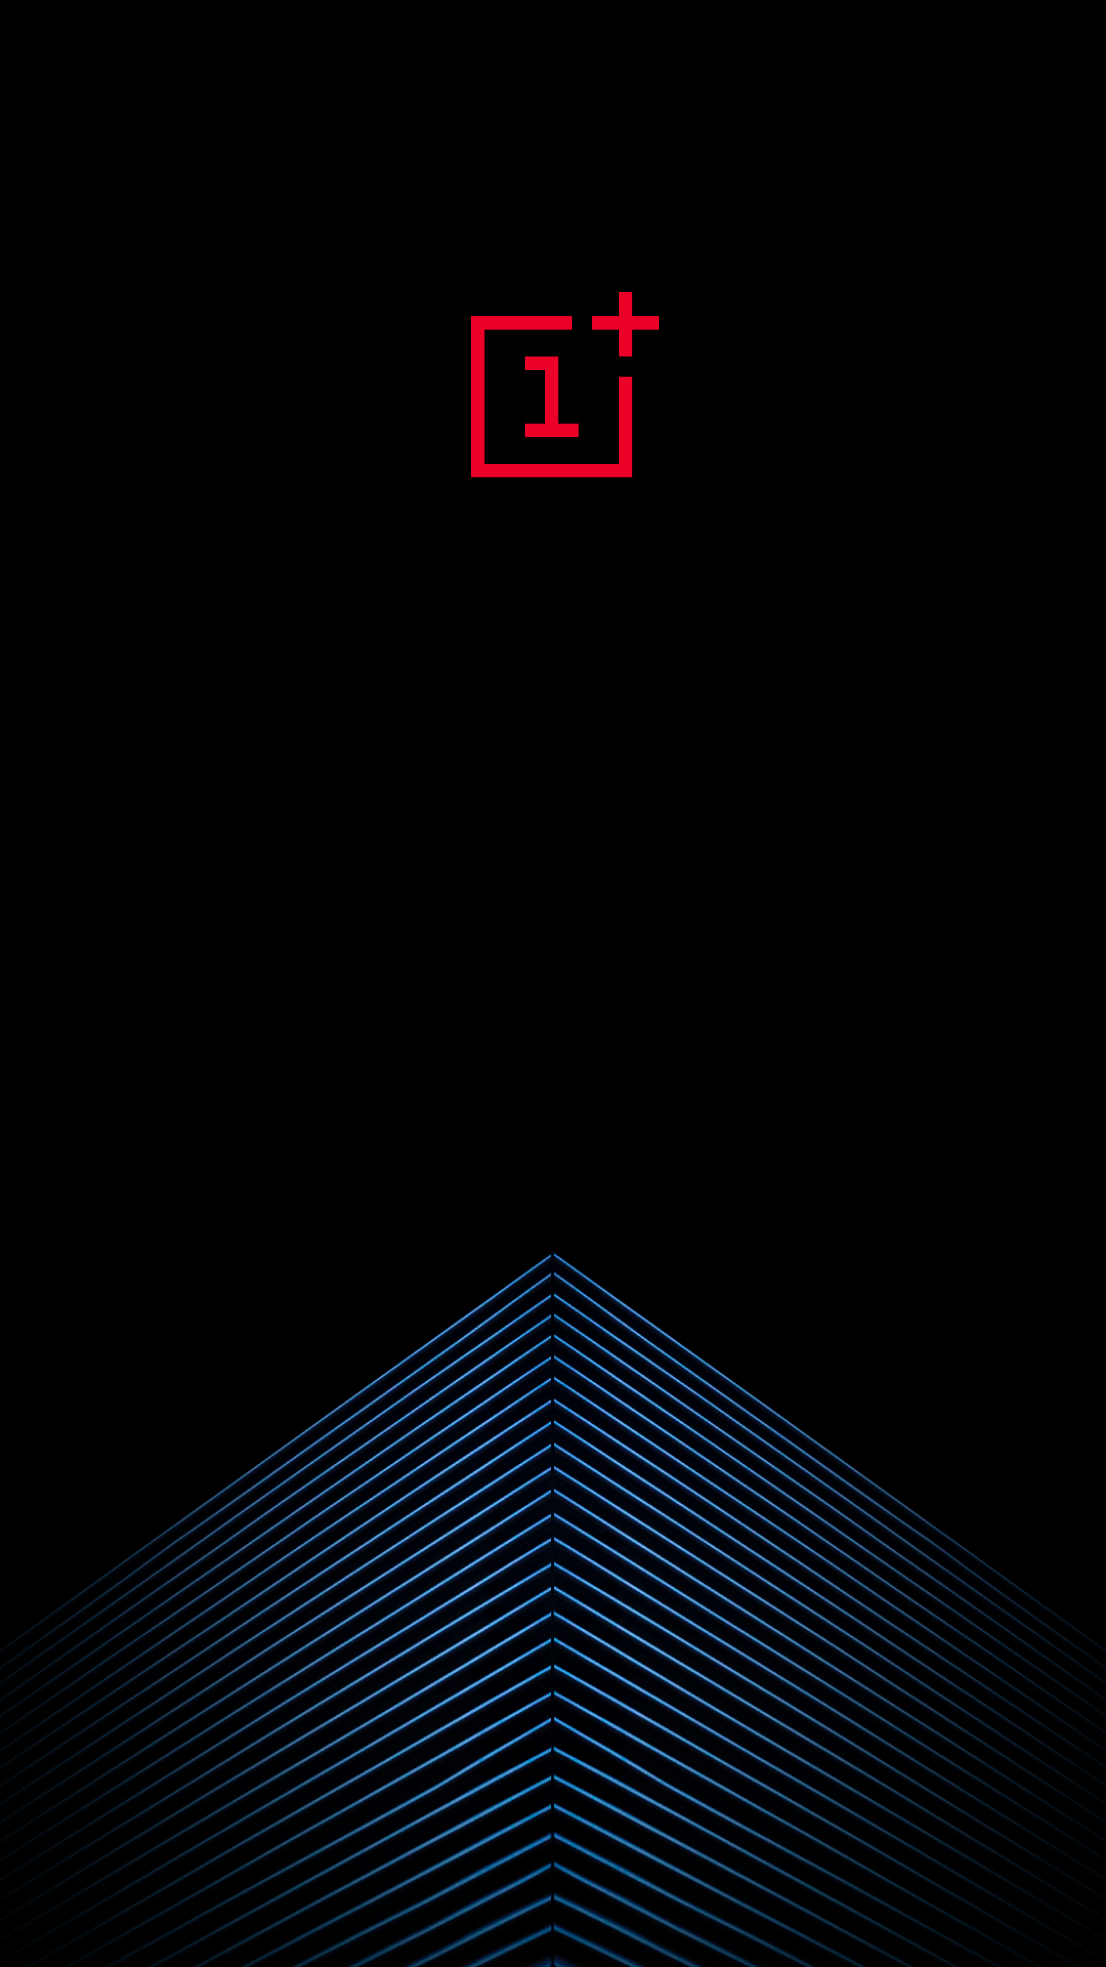 Oneplus Wallpapers Top Free Oneplus Backgrounds